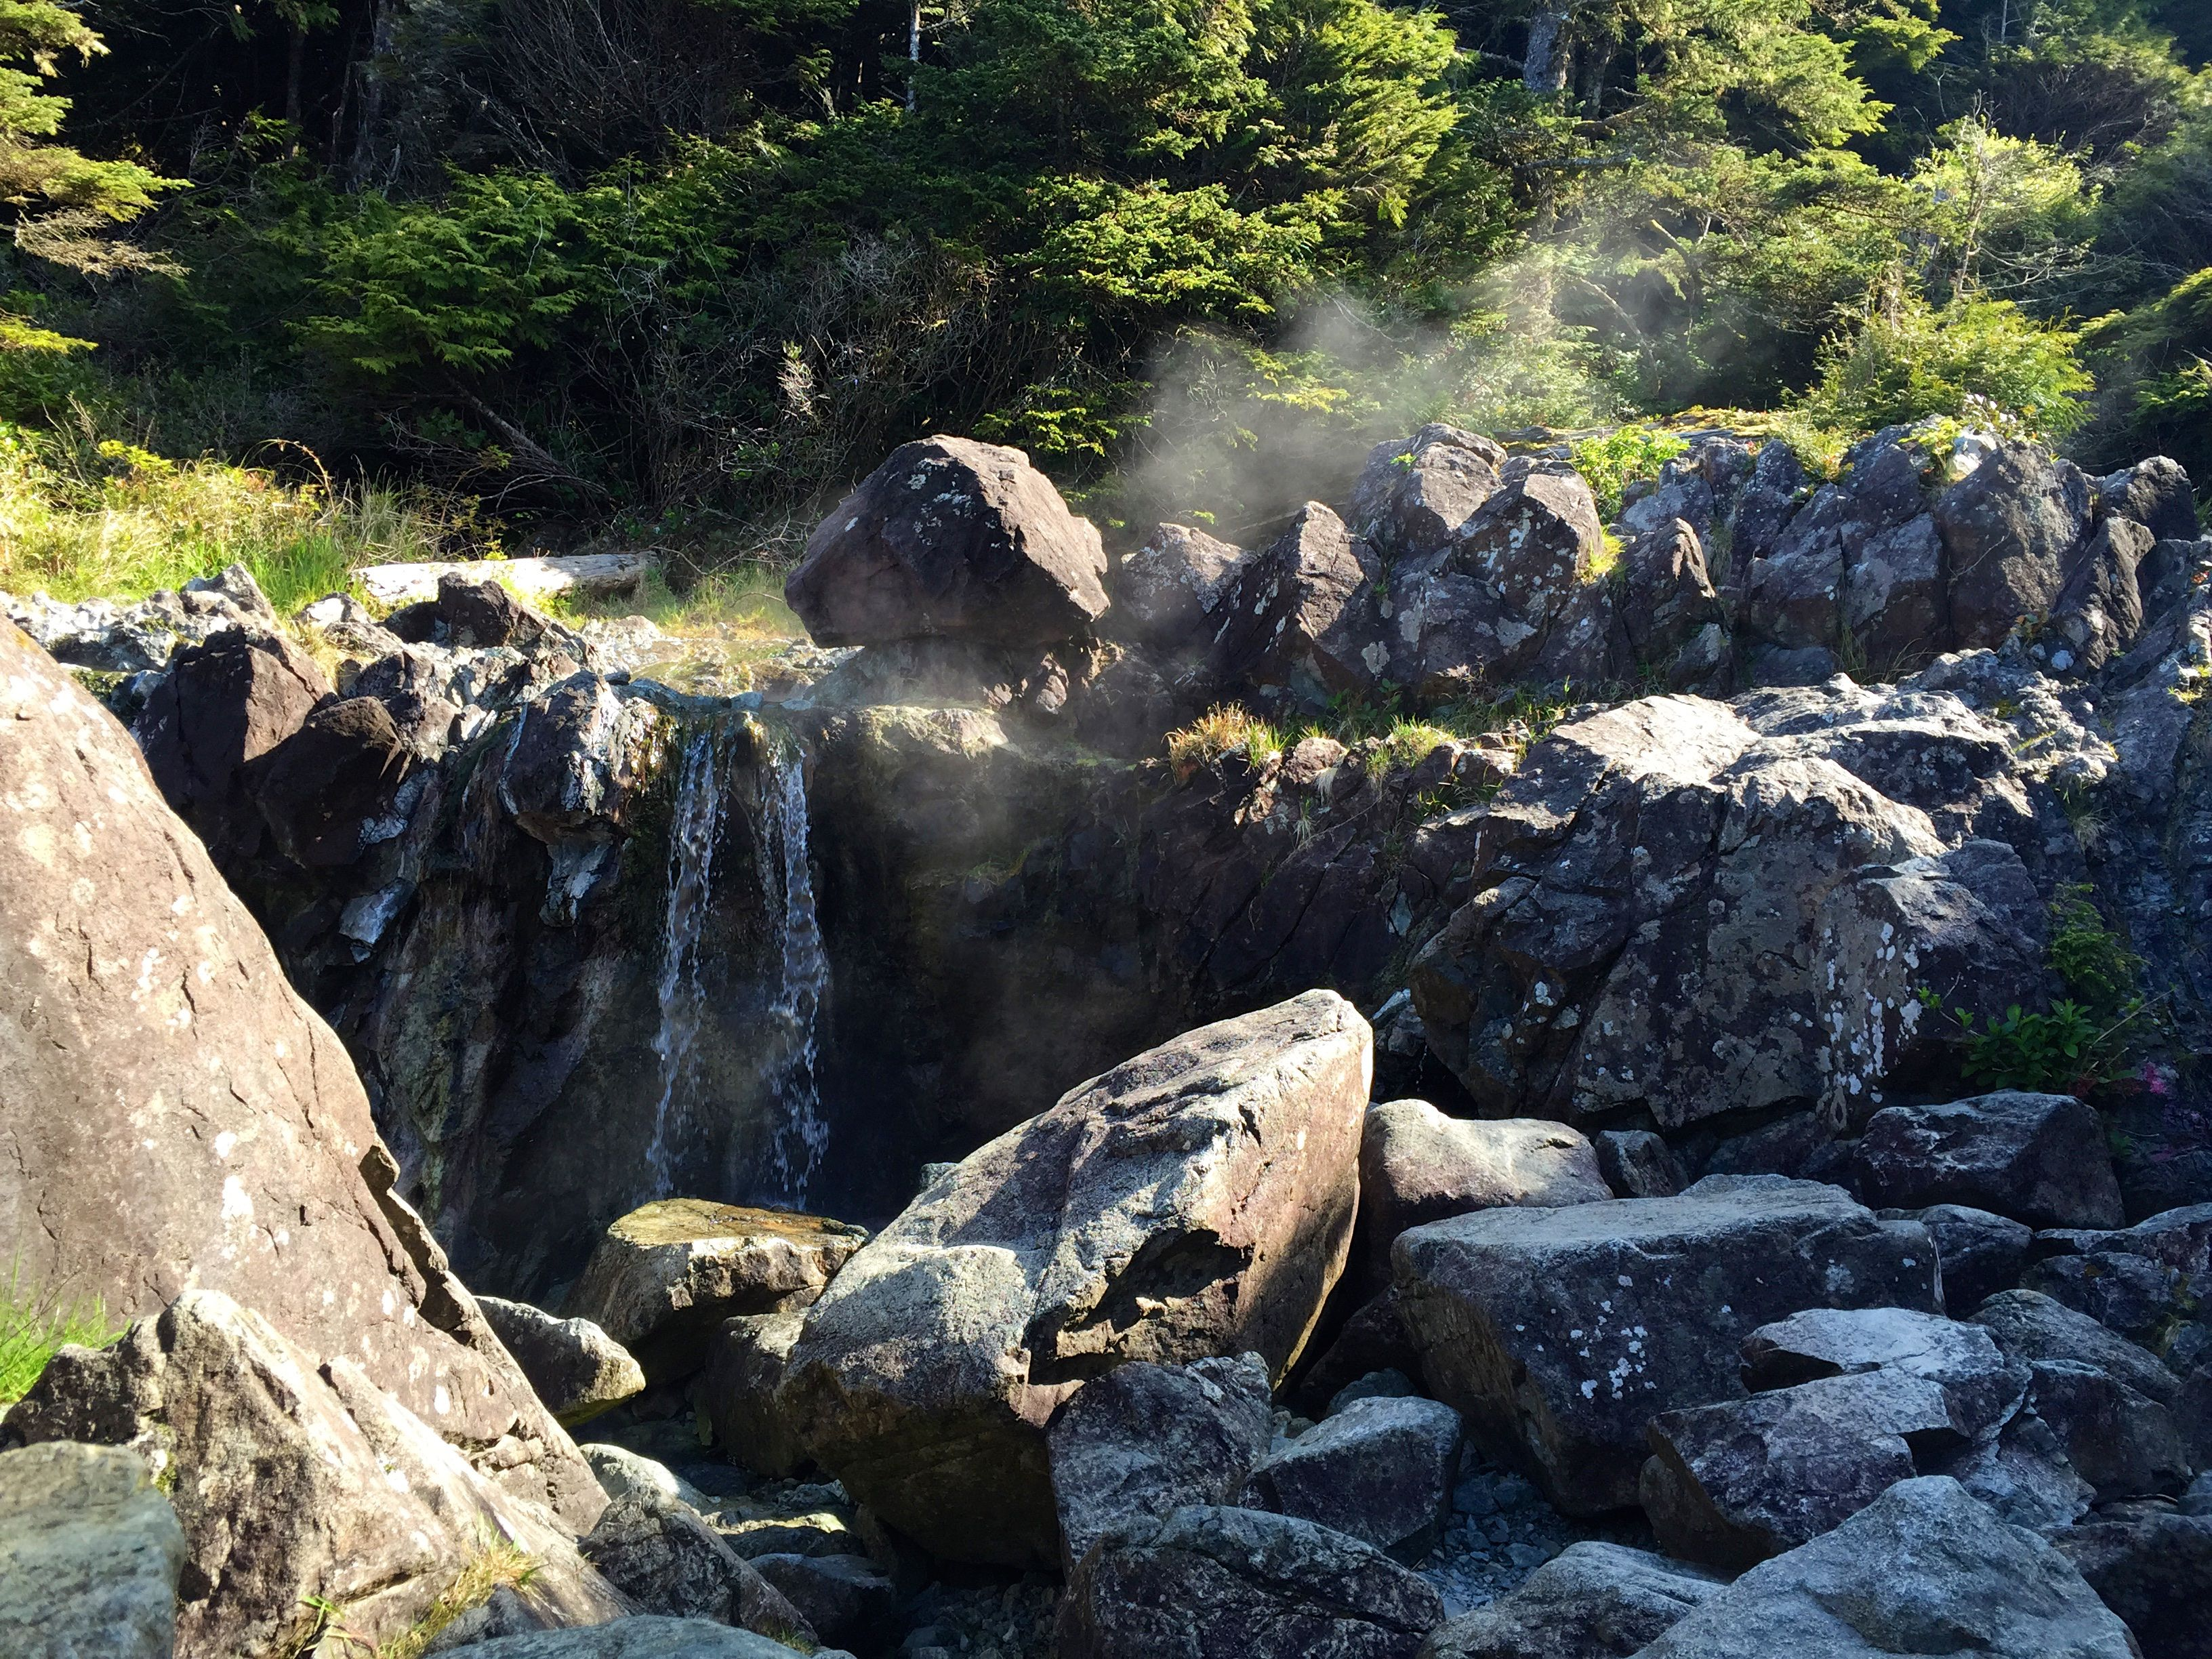 Steaming thermal waters at Hot Springs Cove near Tofino, Canada